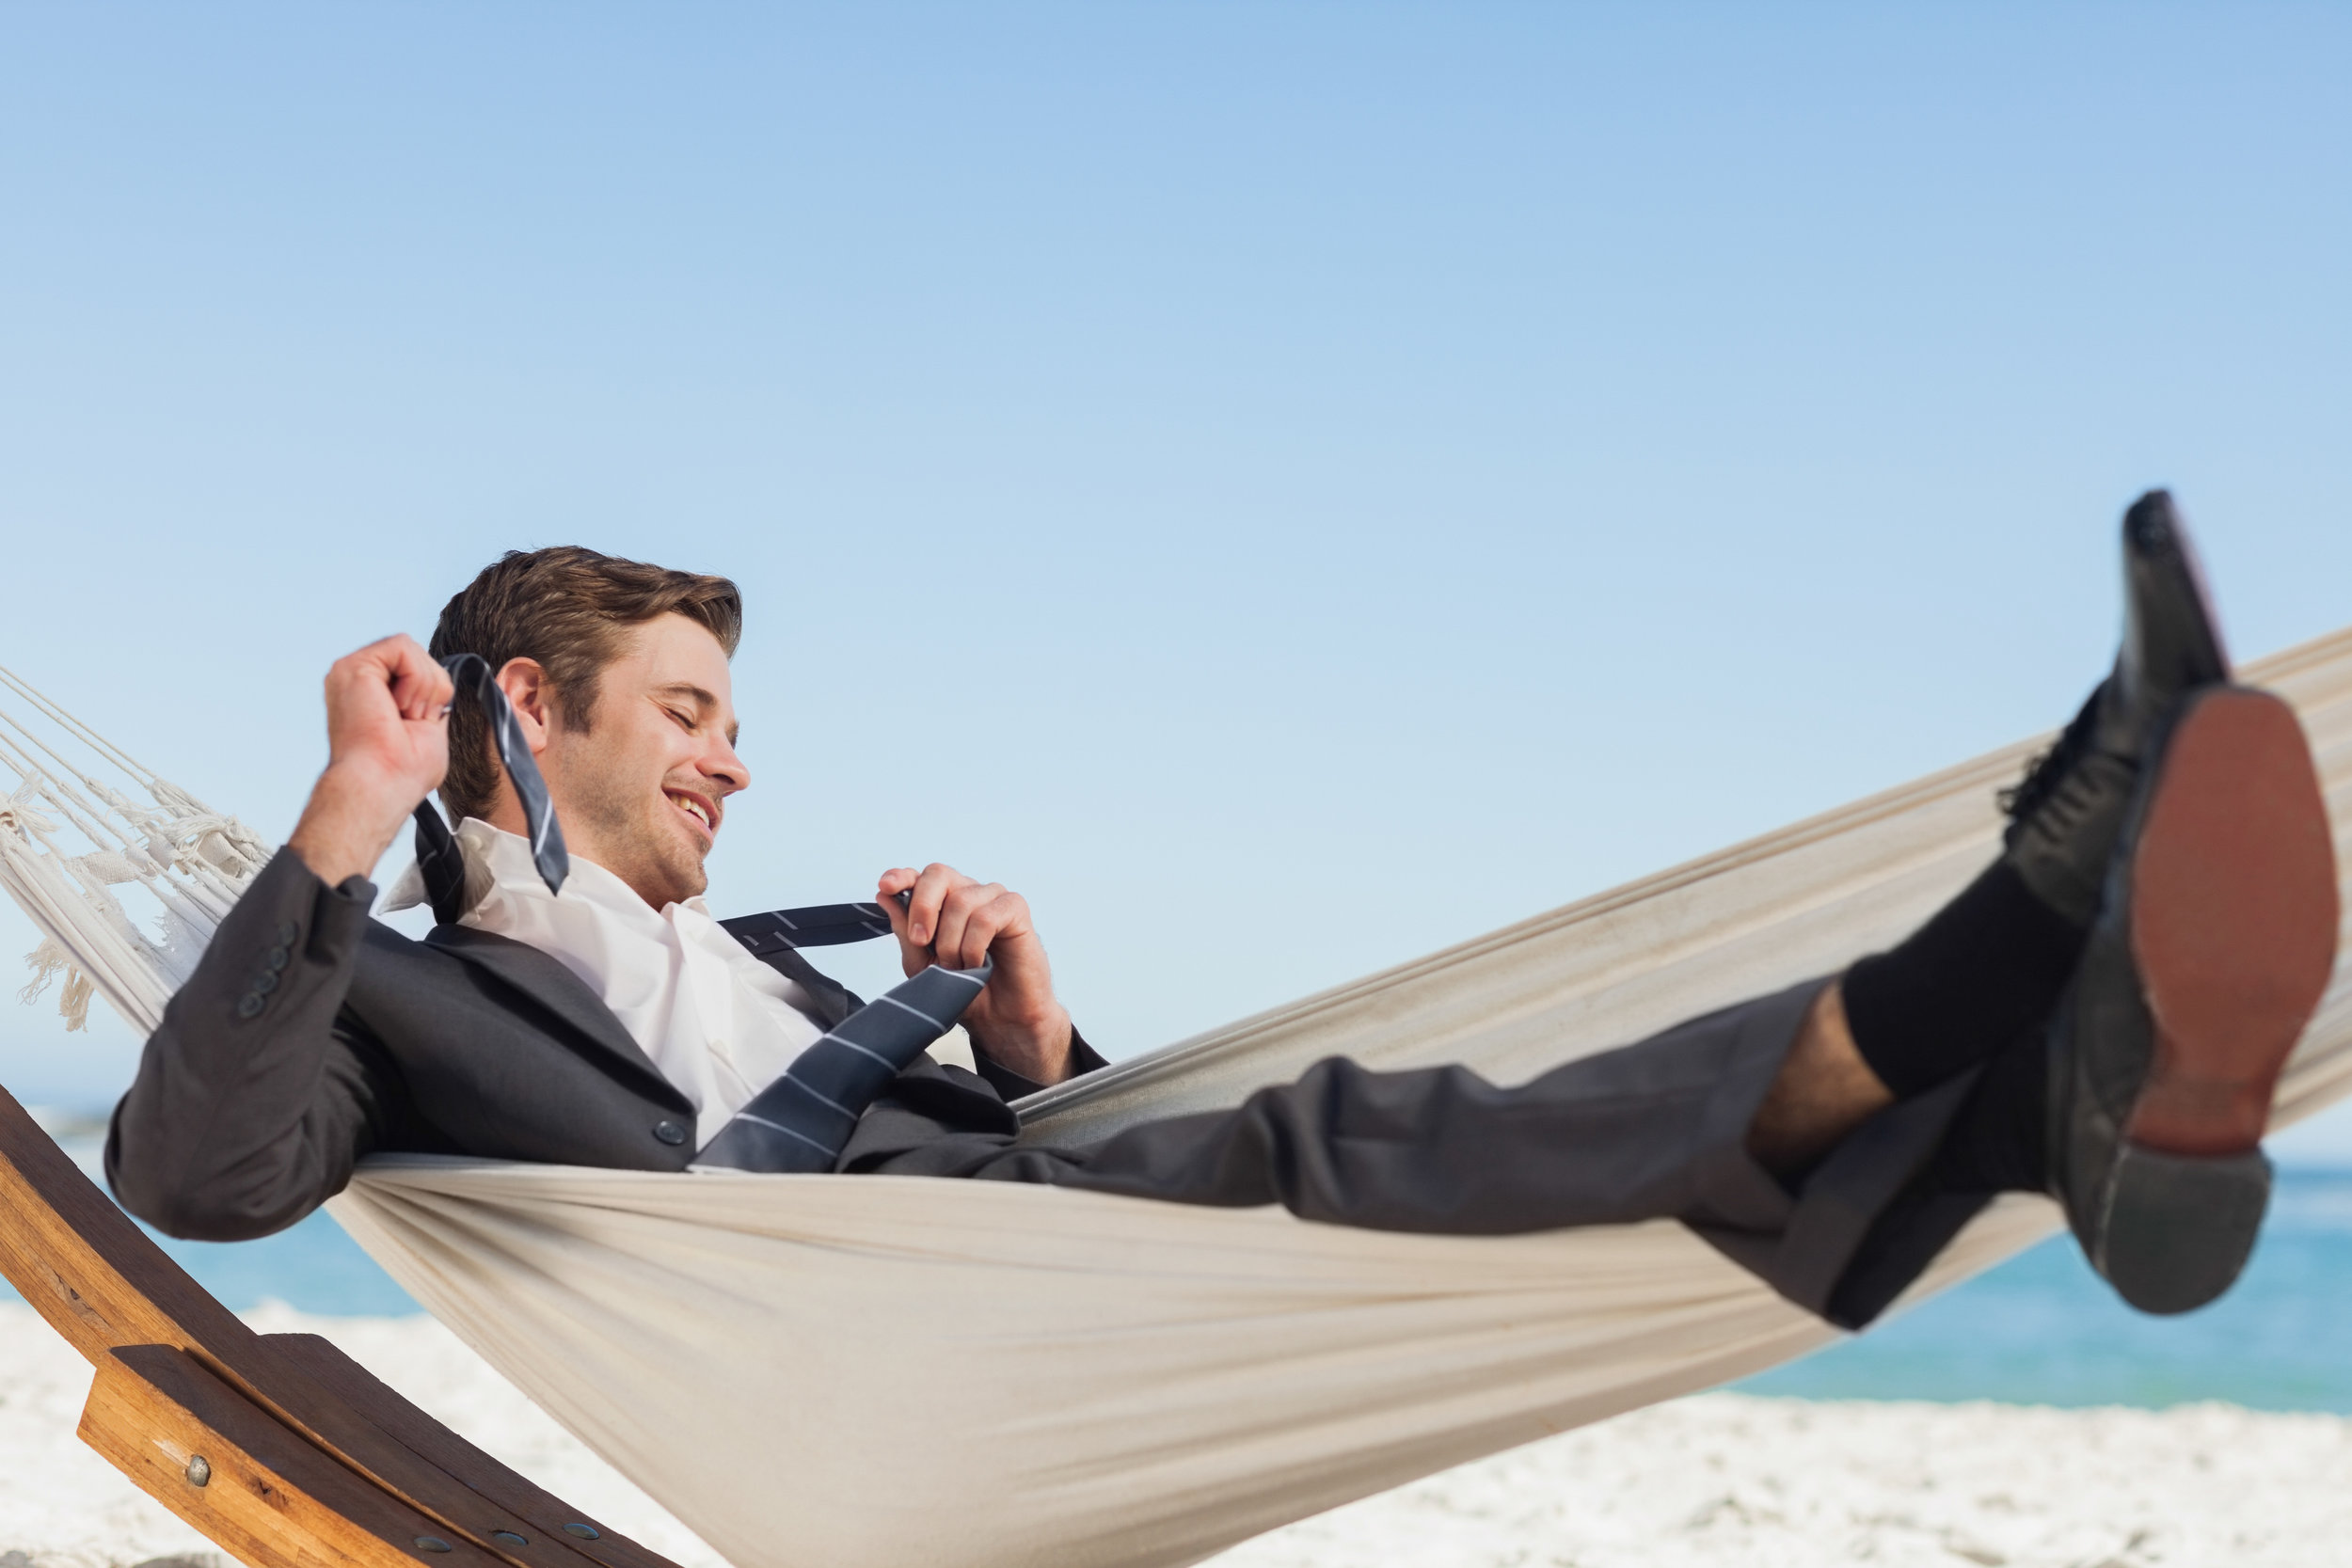 Smiling-businessman-lying-in-hamock-taking-off-his-tie-503070669_3869x2579.jpeg